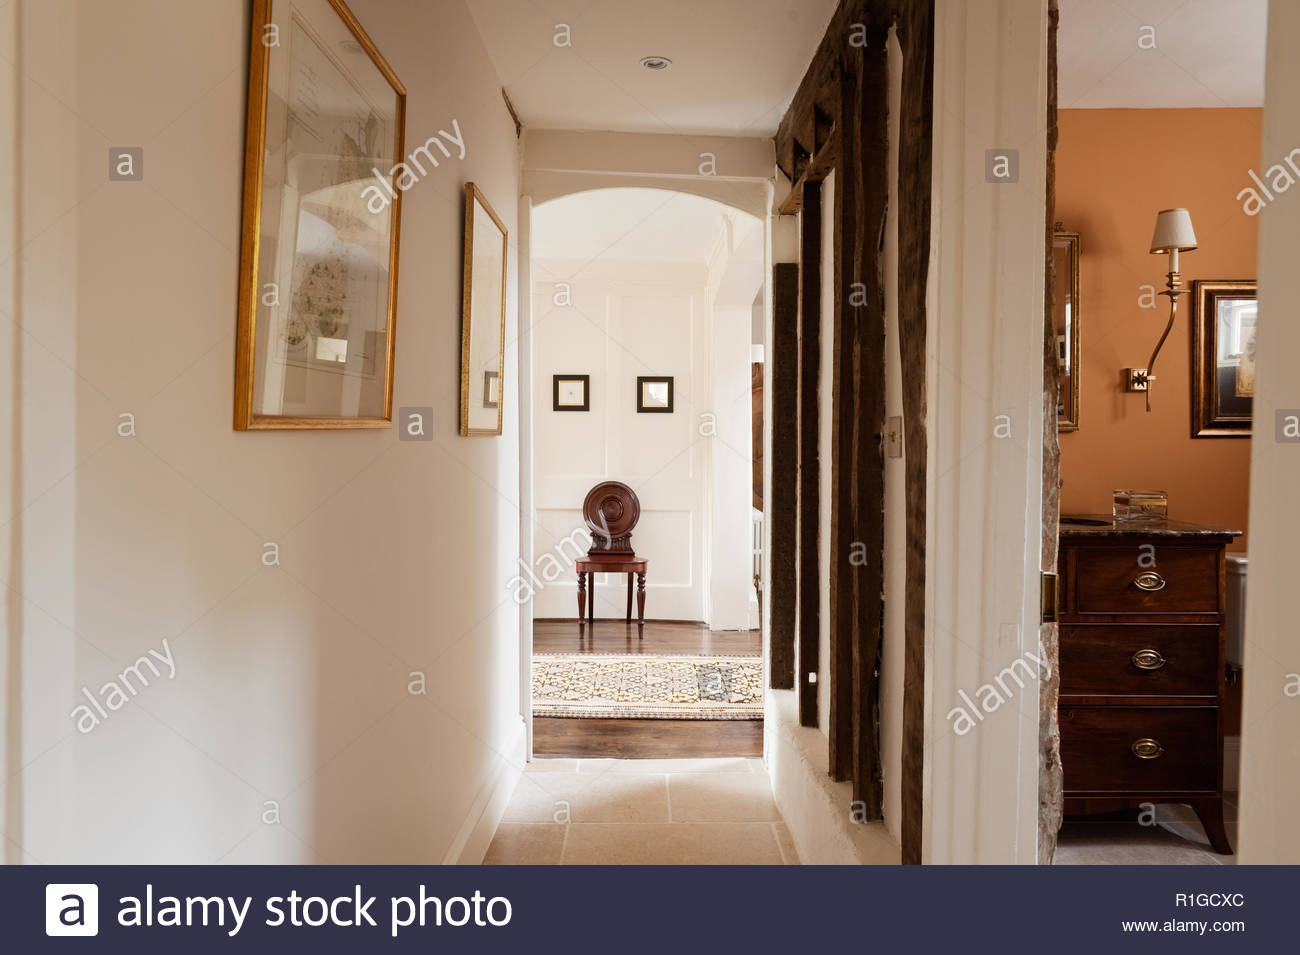 Chair at end of hallway - Stock Image